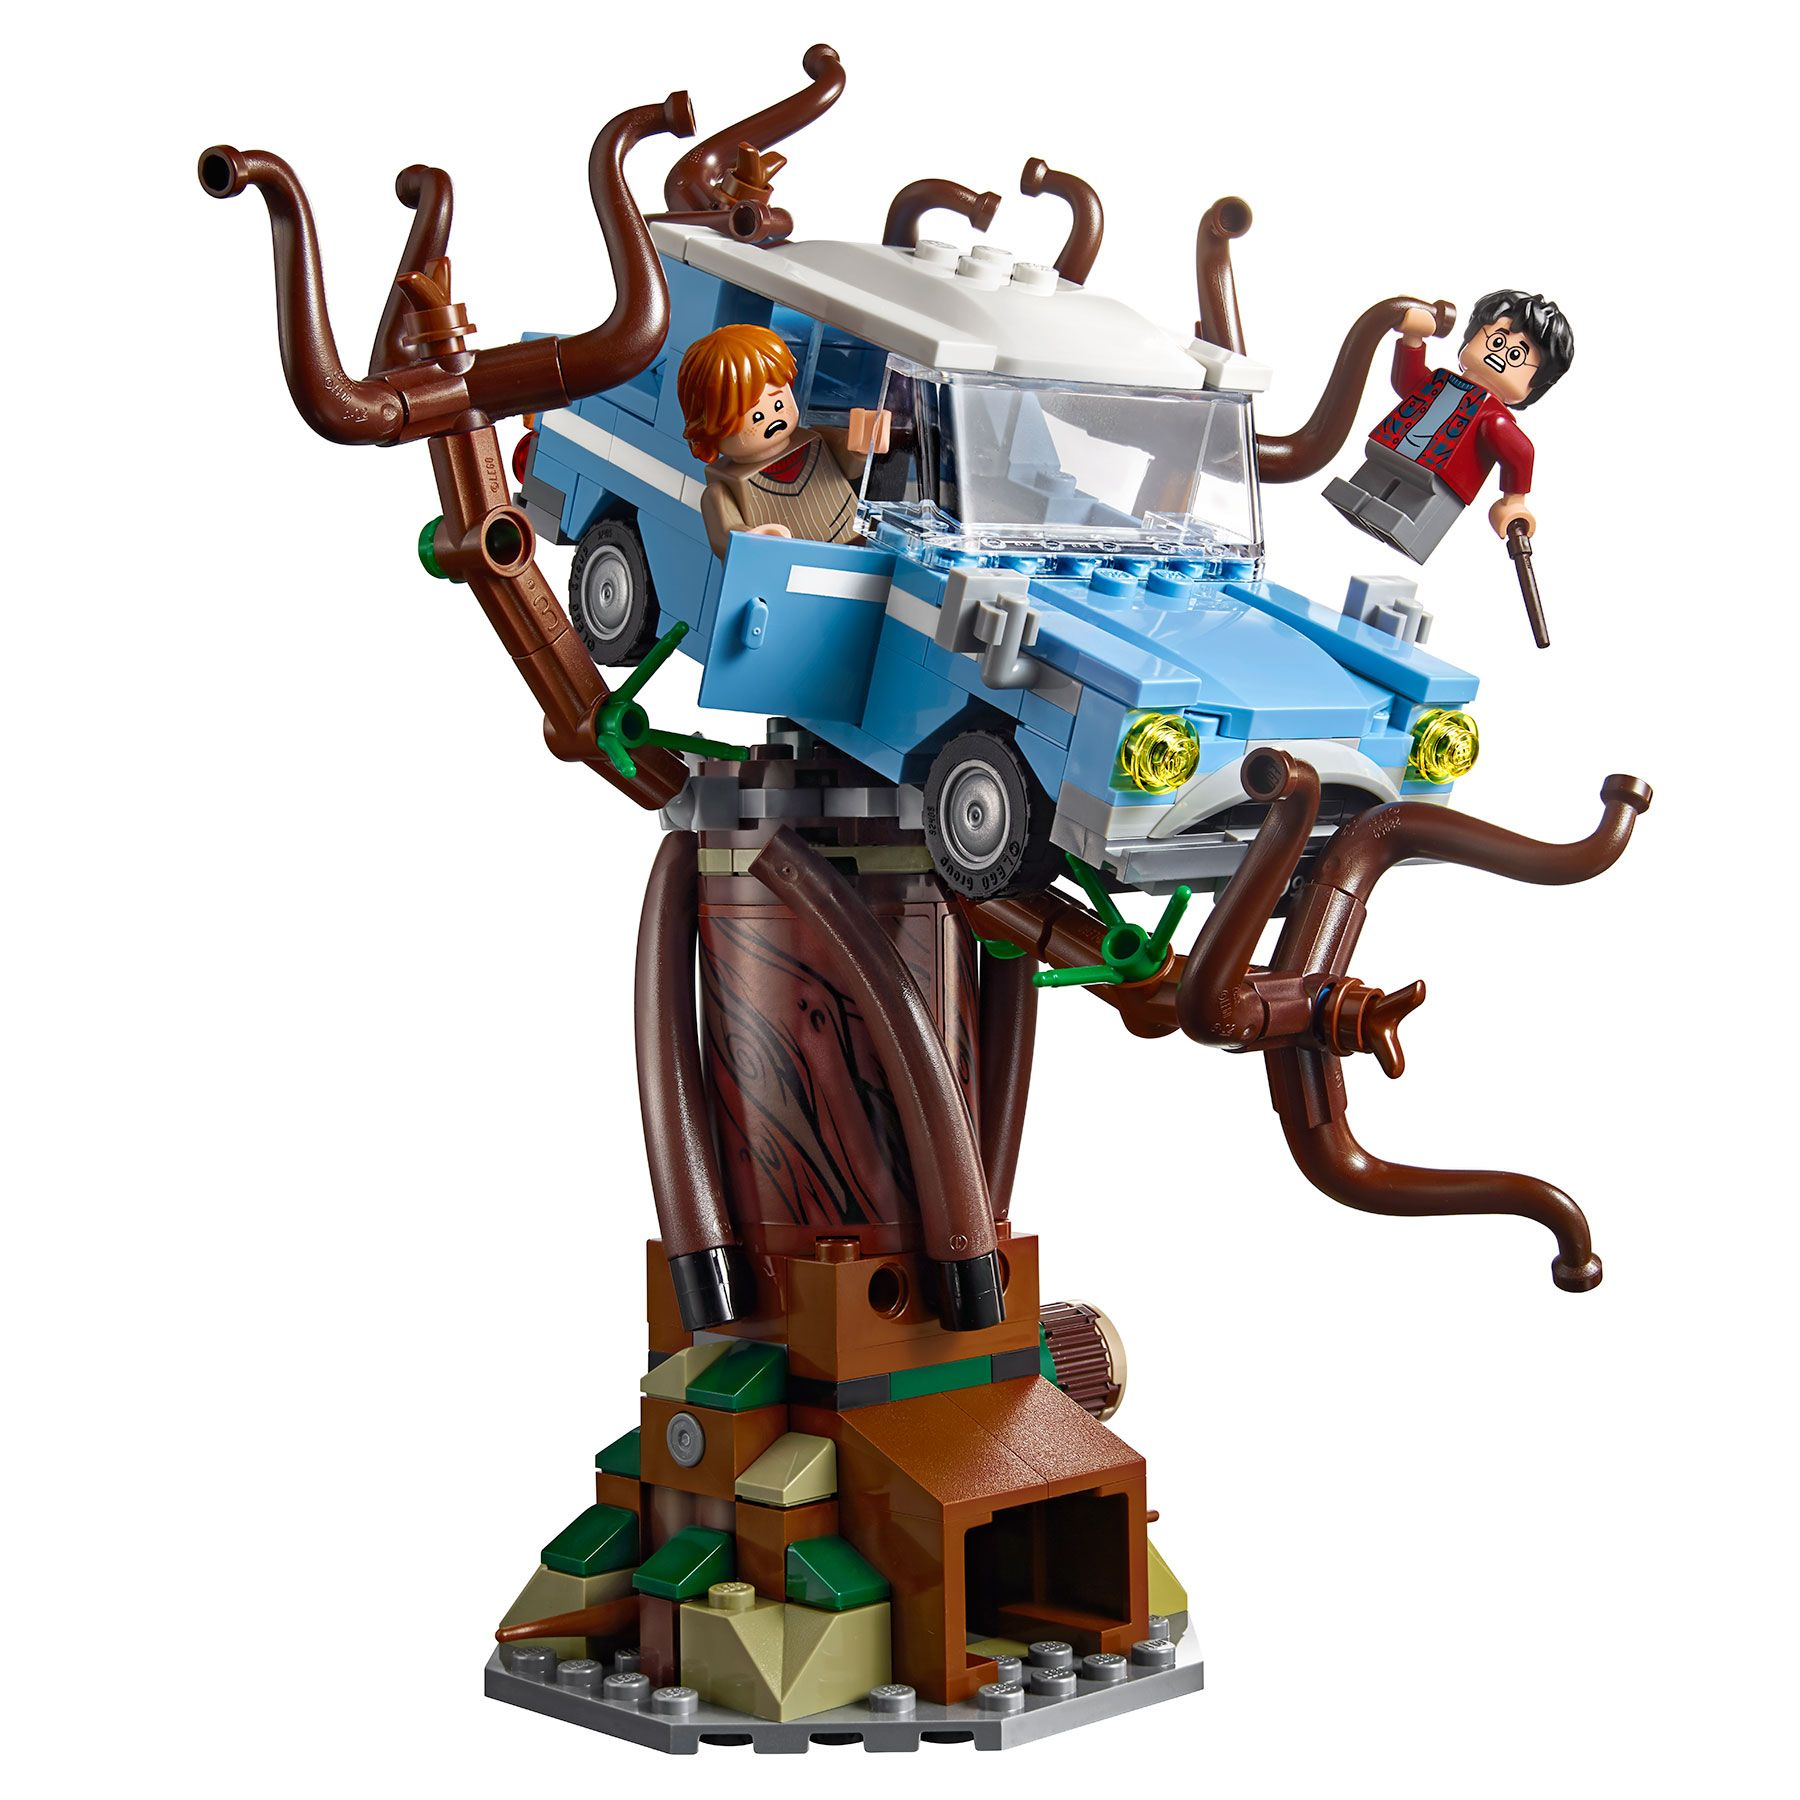 Relive Classic Harry Potter Moments With New Lego Sets Harry Potter Lego Sets Lego Harry Potter Harry Potter Cosplay